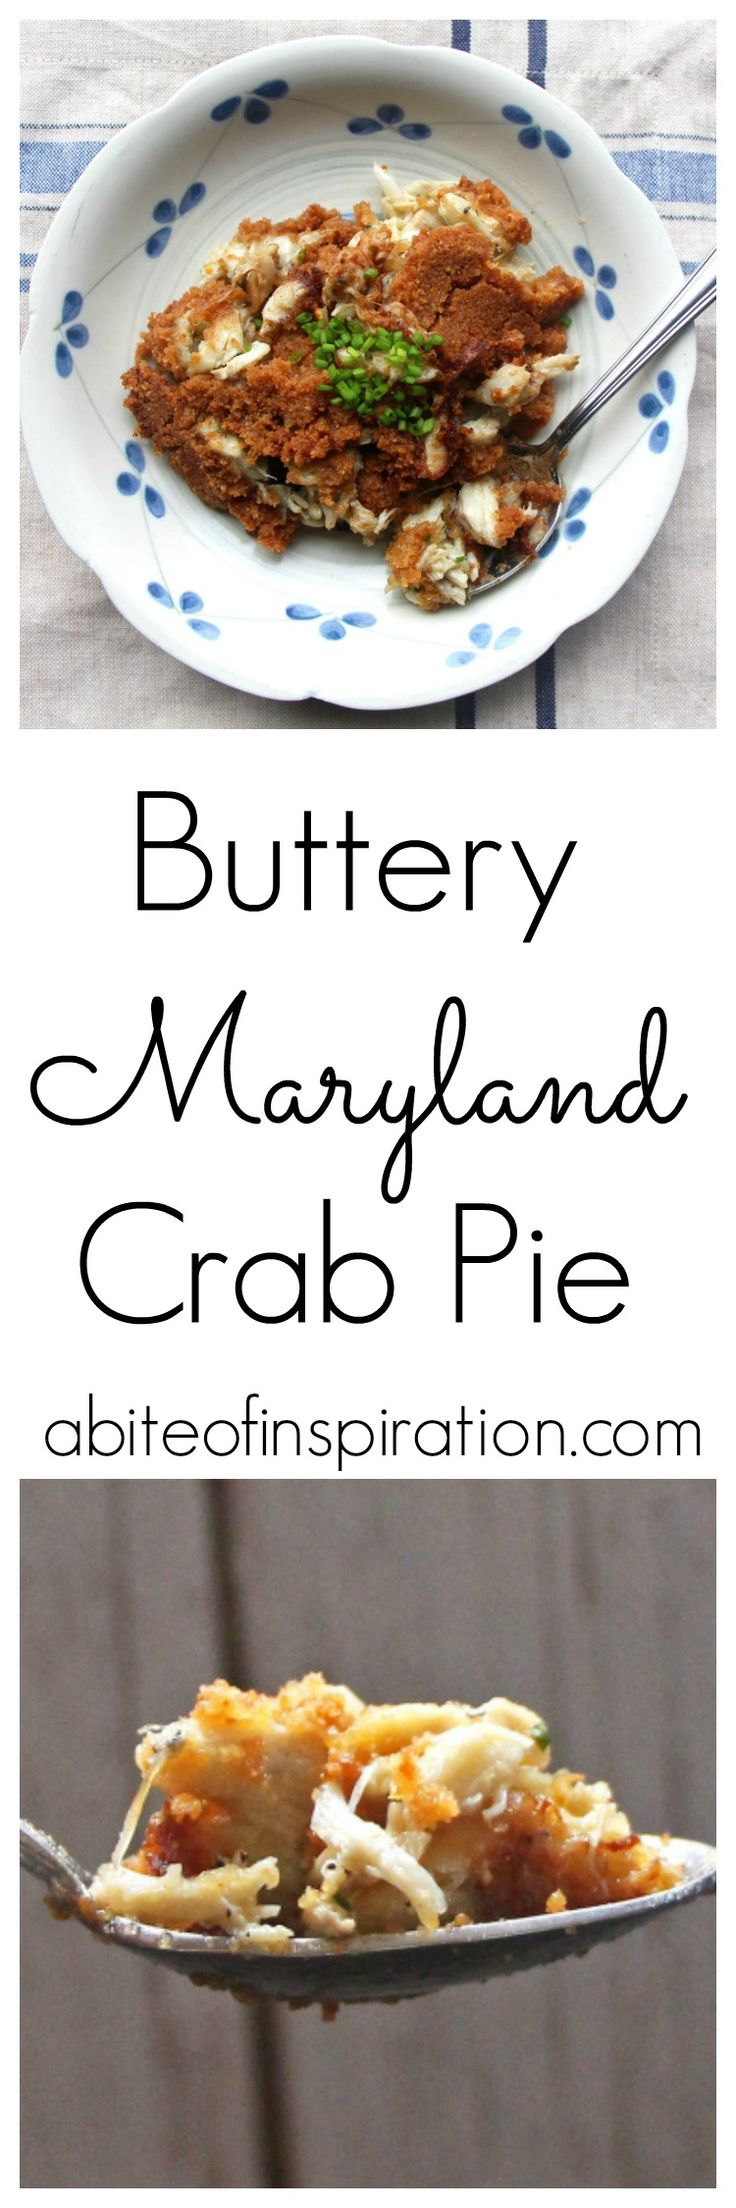 This crab pot pie is filled with succulent jumbo lump crab meat swimming in delicious chive butter and topped off with a golden crust.